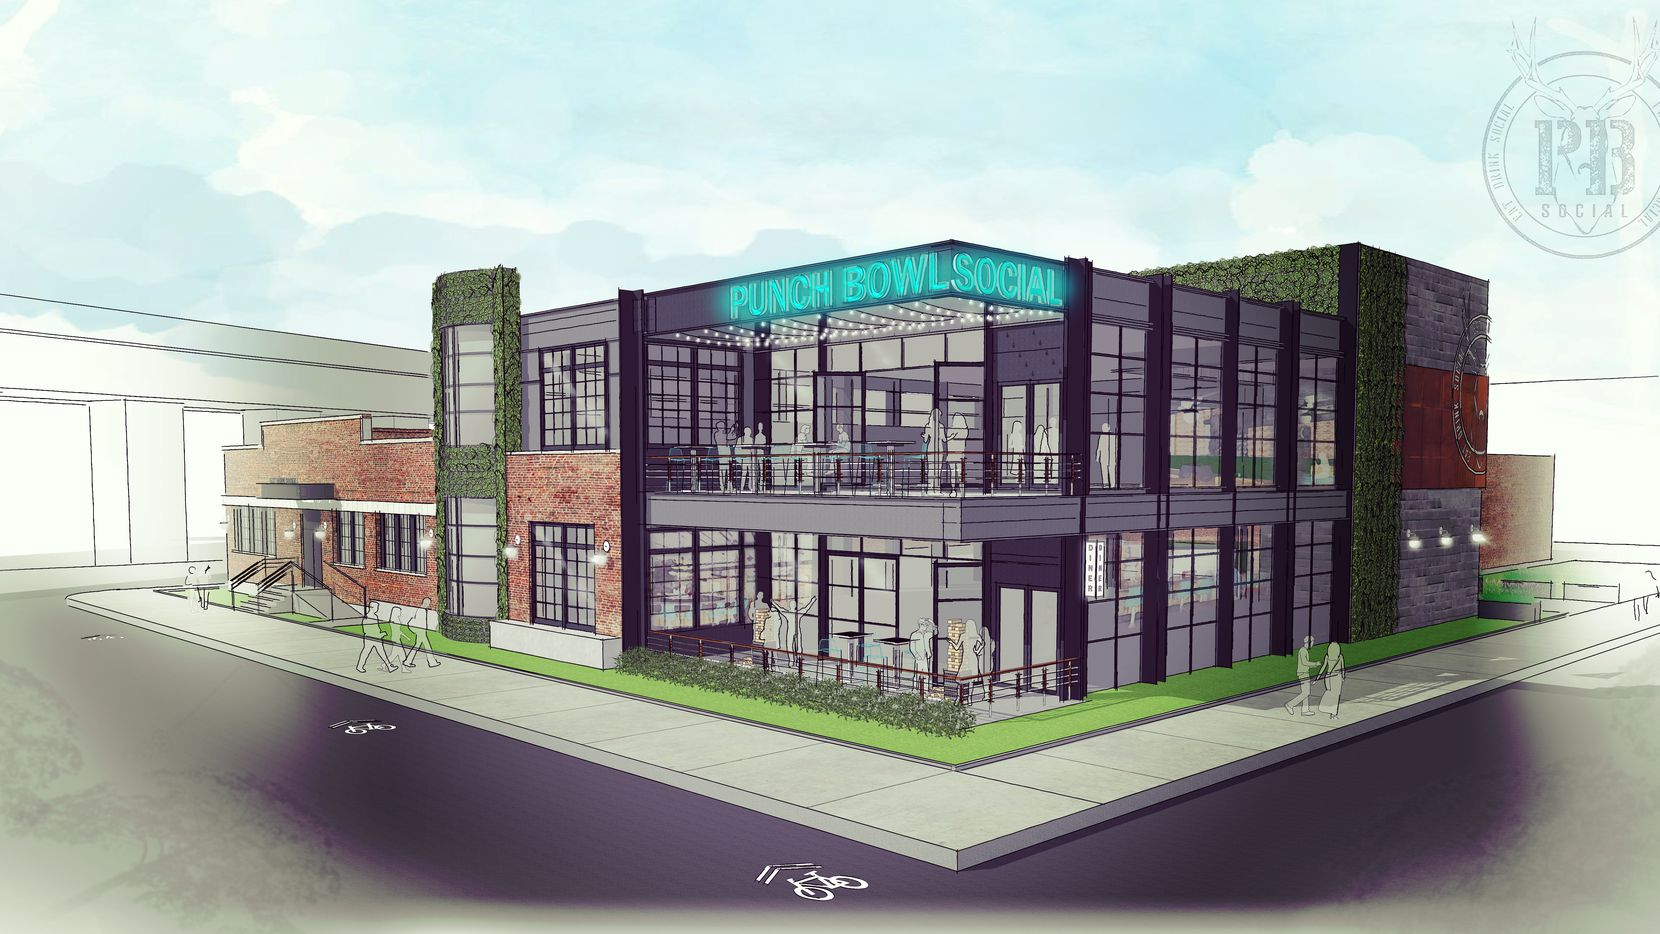 Artist's rendering of the future Punch Bowl Social location in Dallas' Deep Ellum district.